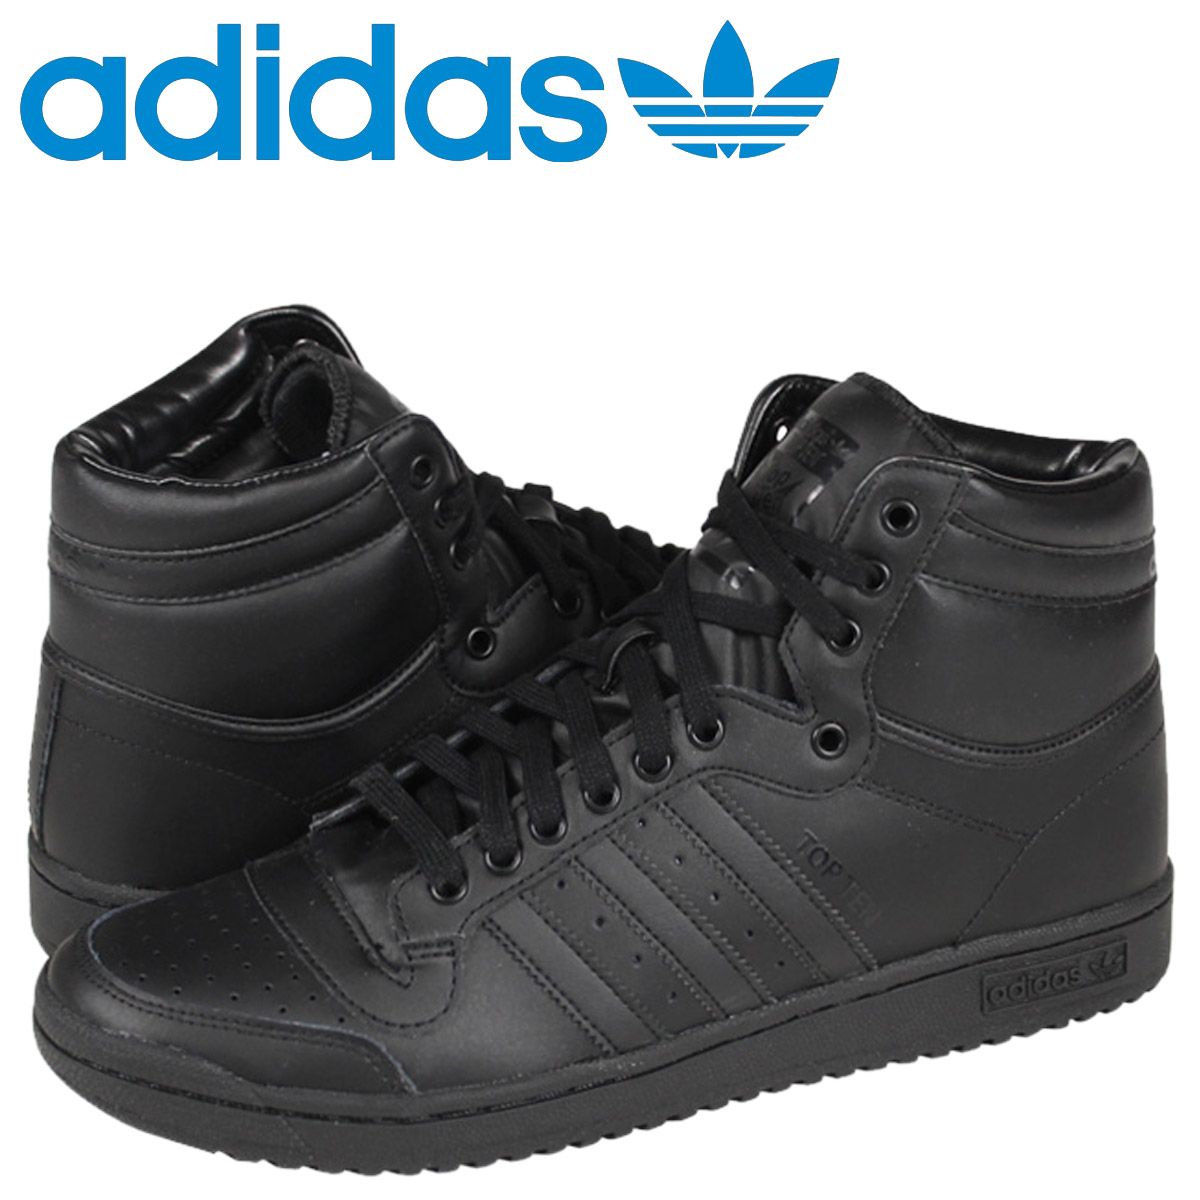 great quality retail prices crazy price adidas Originals Adidas original stop ten high sneakers TOP TEN HI C75323  men shoes black